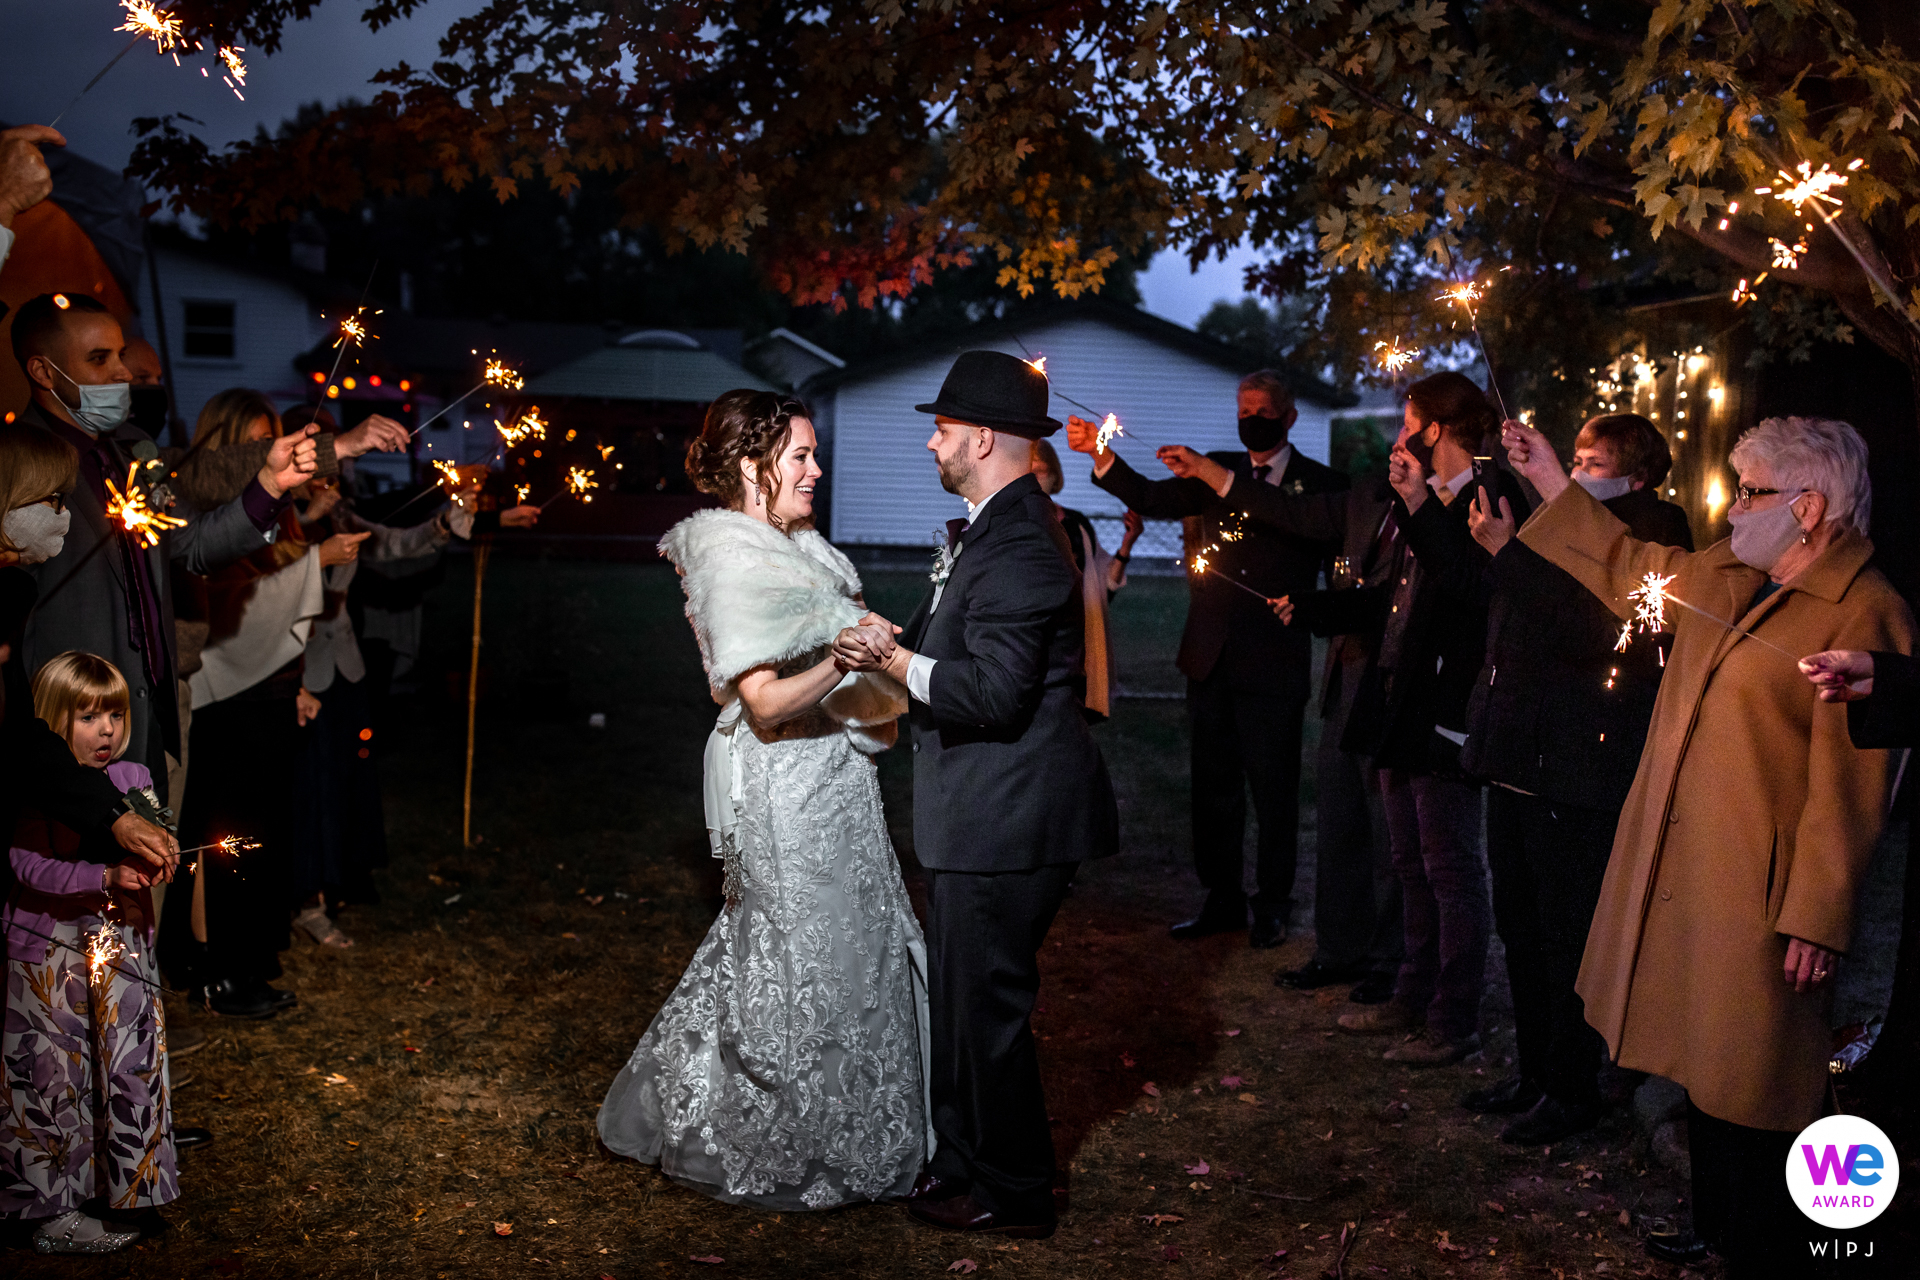 Minnesota Backyard Wedding Image   The couple dances for their guests by sparkler light